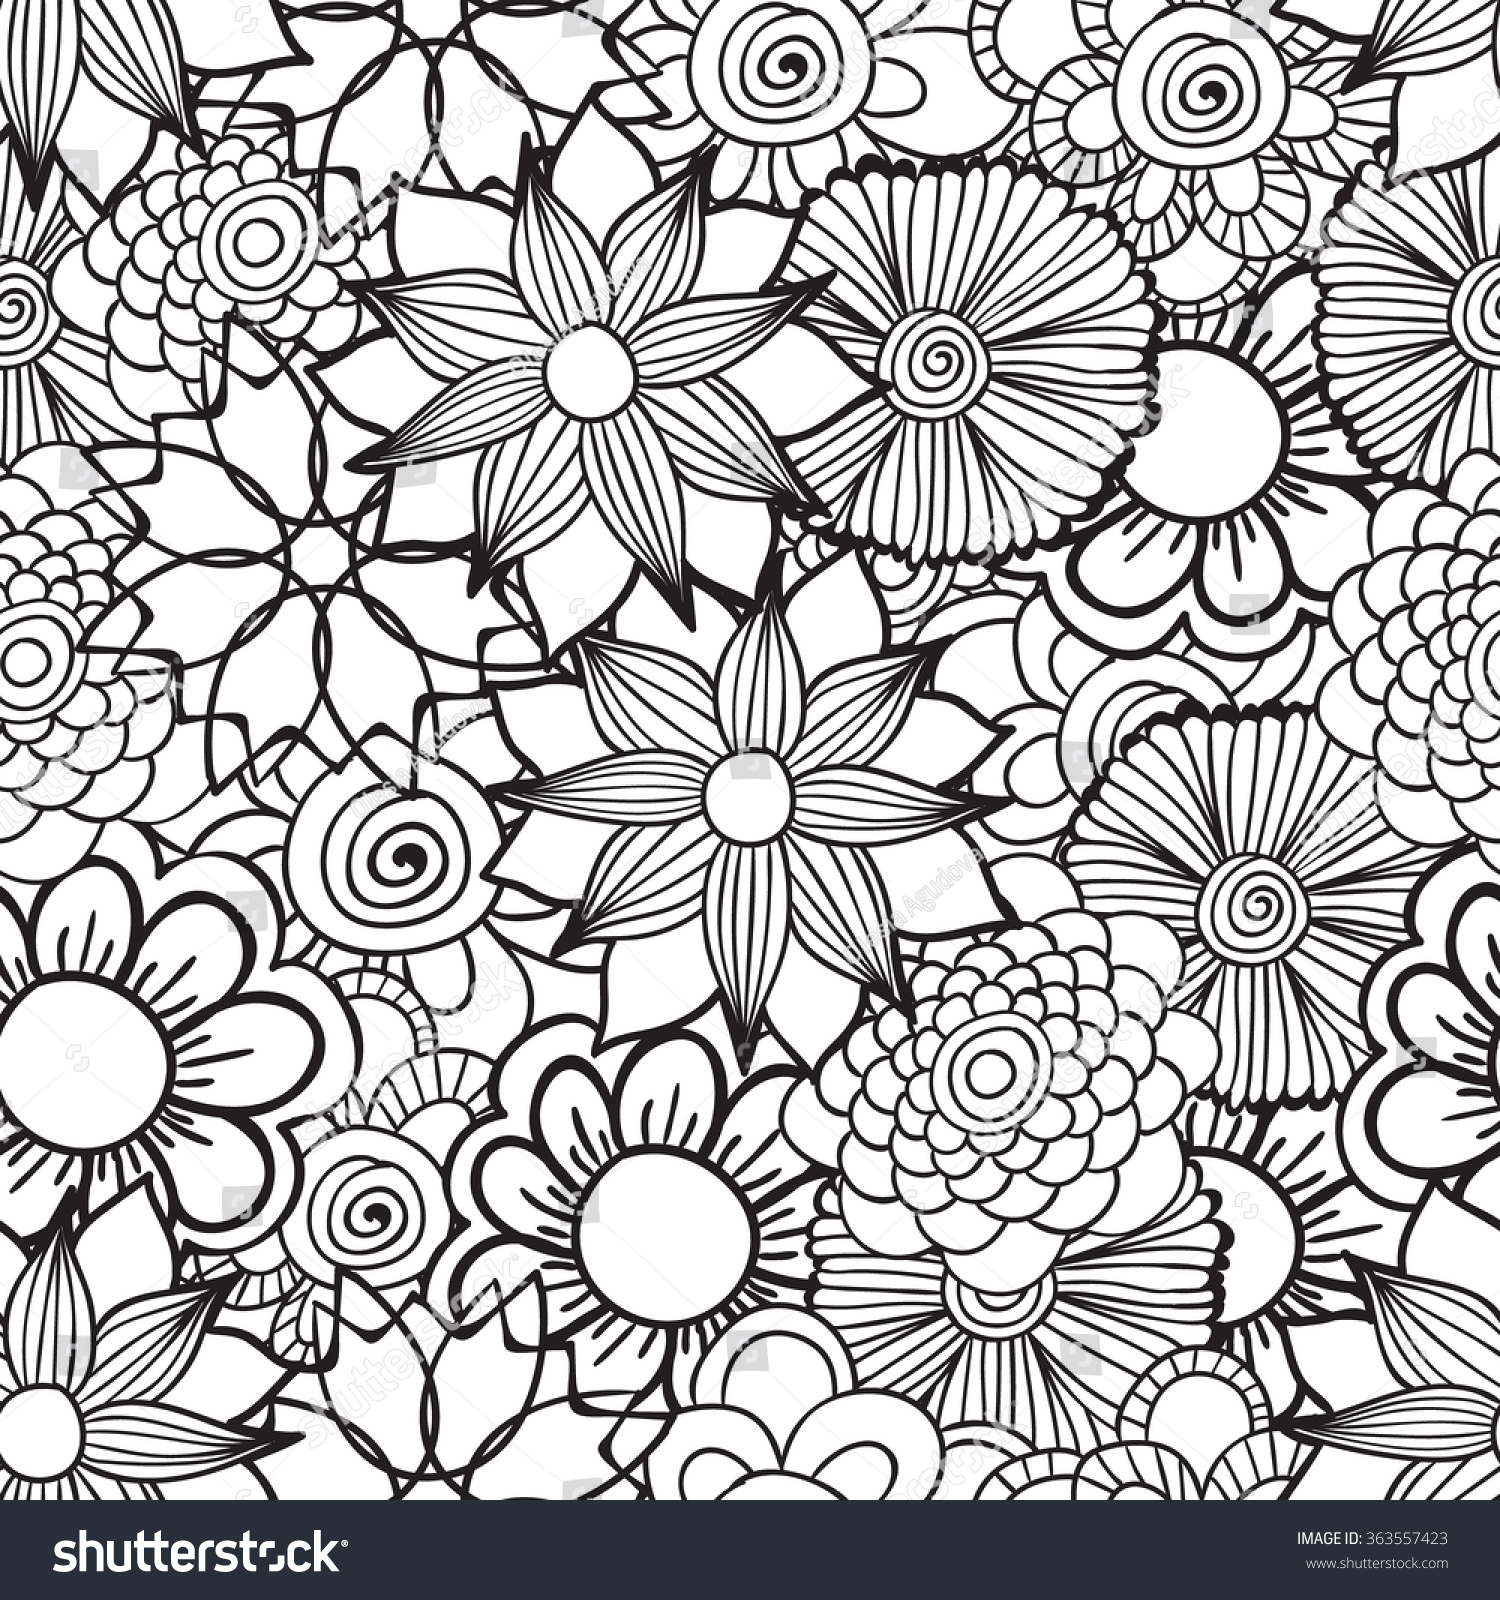 Hand Drawn Artistic Ethnic Ornamental Patterned Floral ...